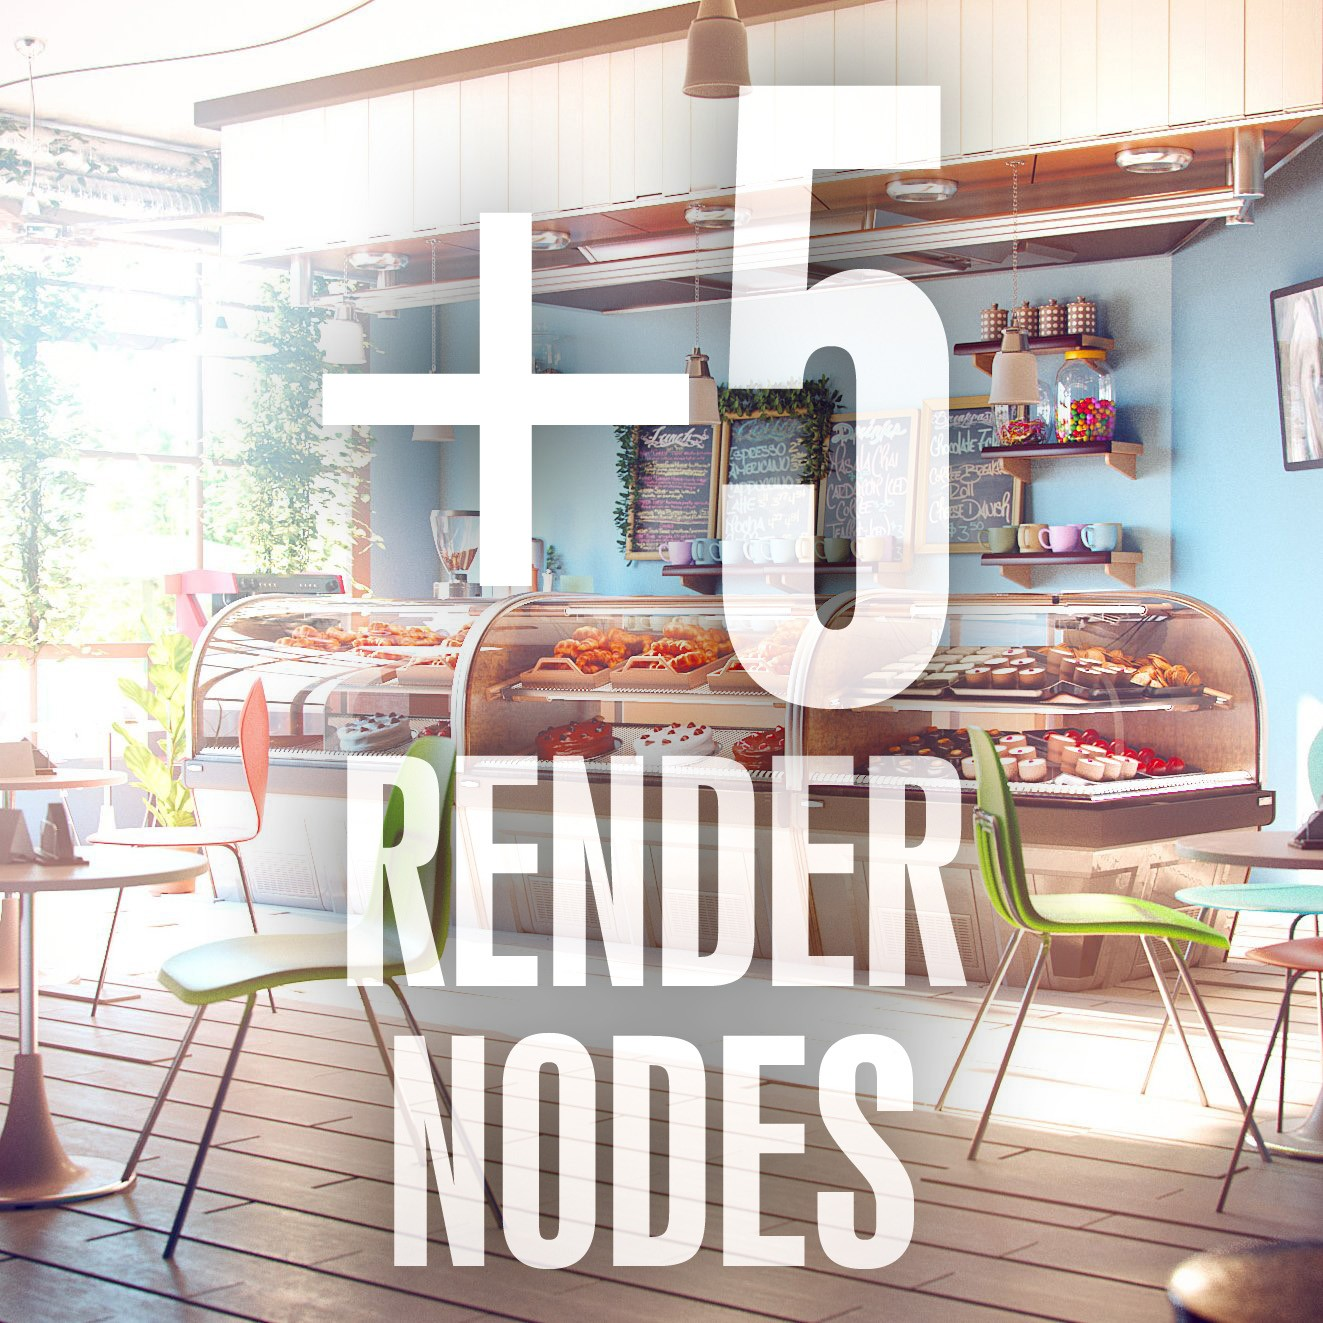 V-Ray 3.5 for 3ds Max + 5 Render Nodes